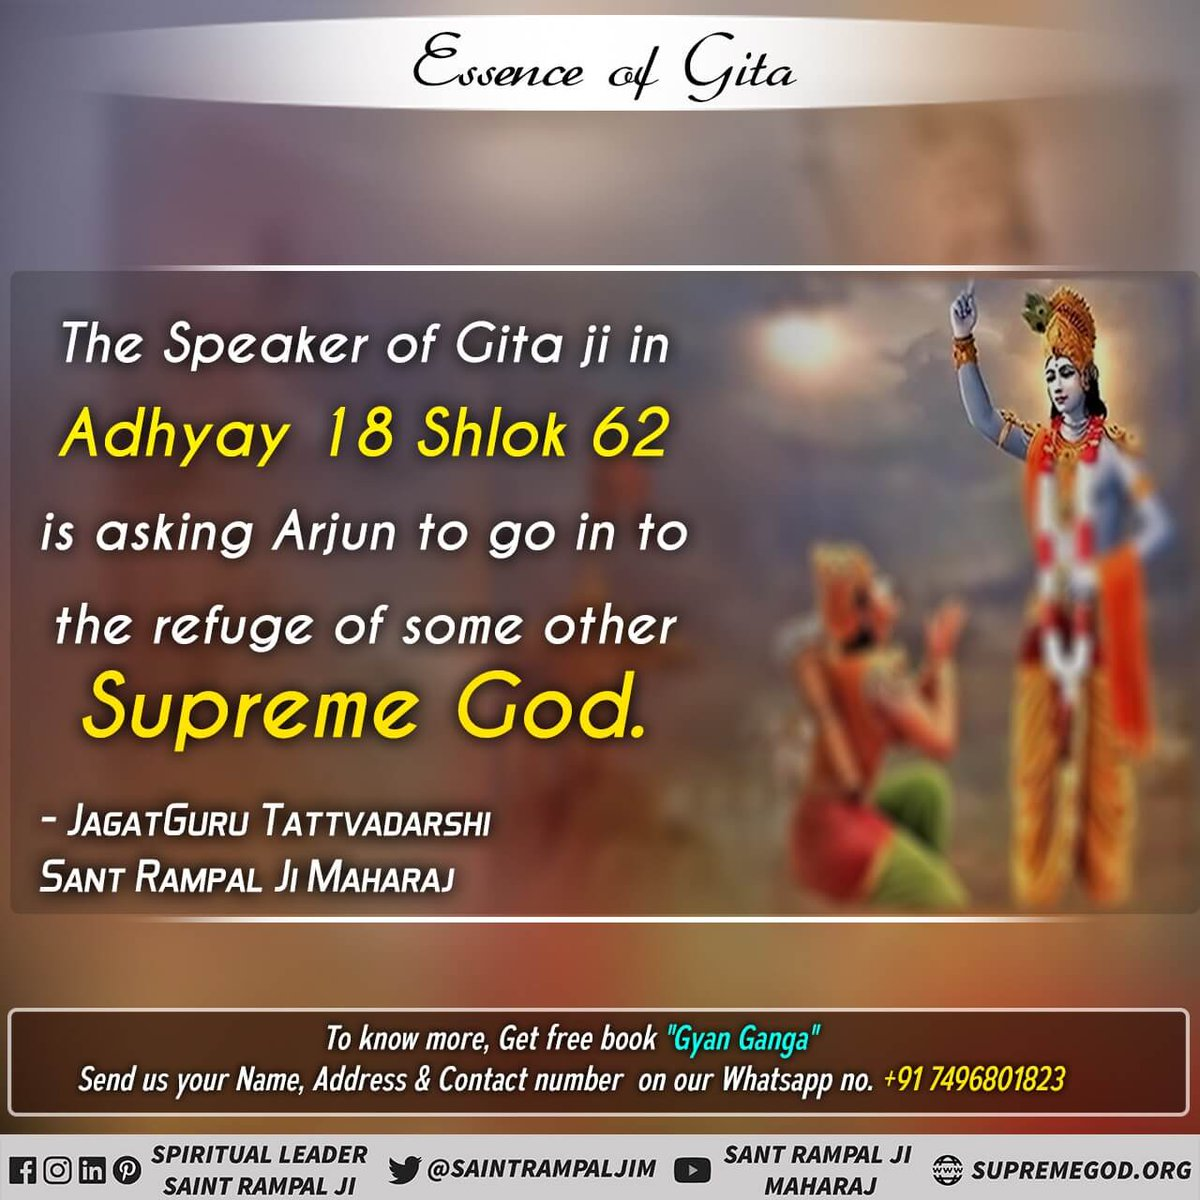 #FridayThoughts The speaker of geeta ji in adhyay 18 shlok 62 is asking arjun to go in to the refuge of some other Supreme God.  For More information Watch Sadhna Tv At 7:30 Pm.